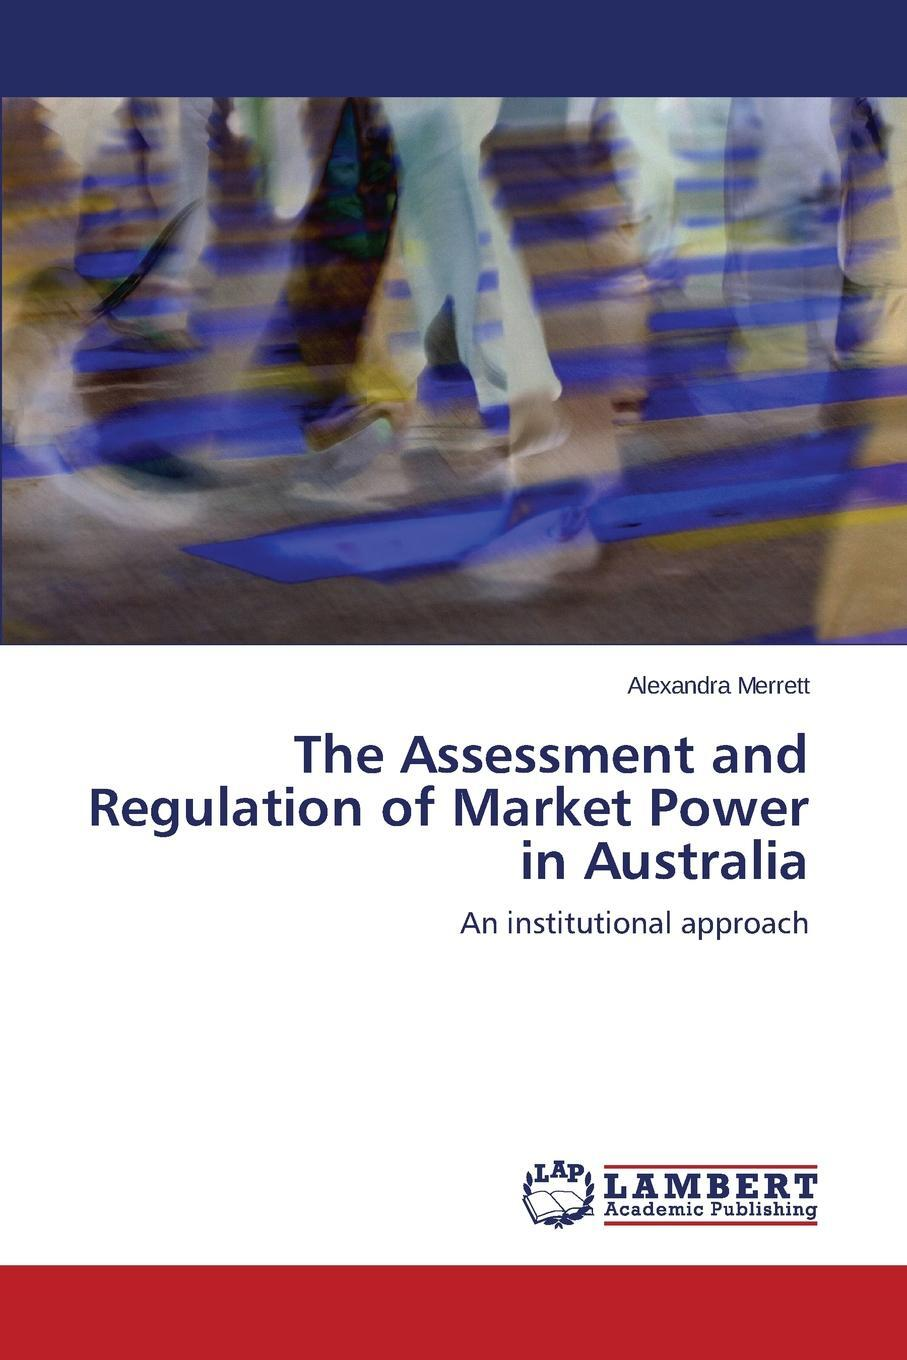 The Assessment and Regulation of Market Power in Australia. Merrett Alexandra